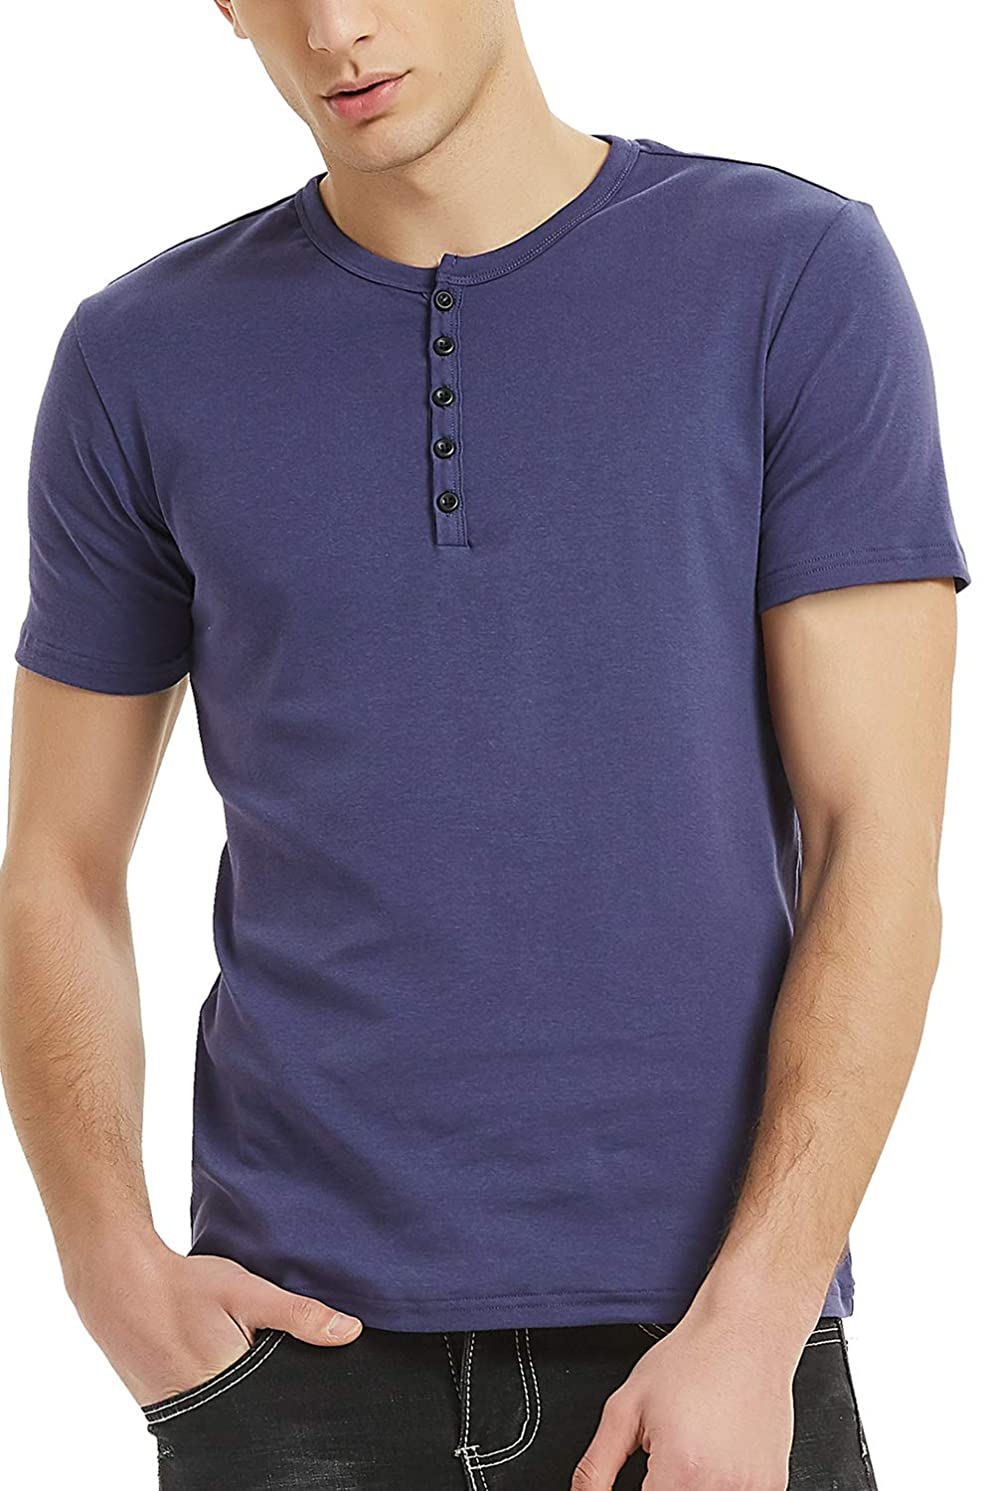 Henley Shirts for Men Short Sleeve Cotton Henley Button Tee